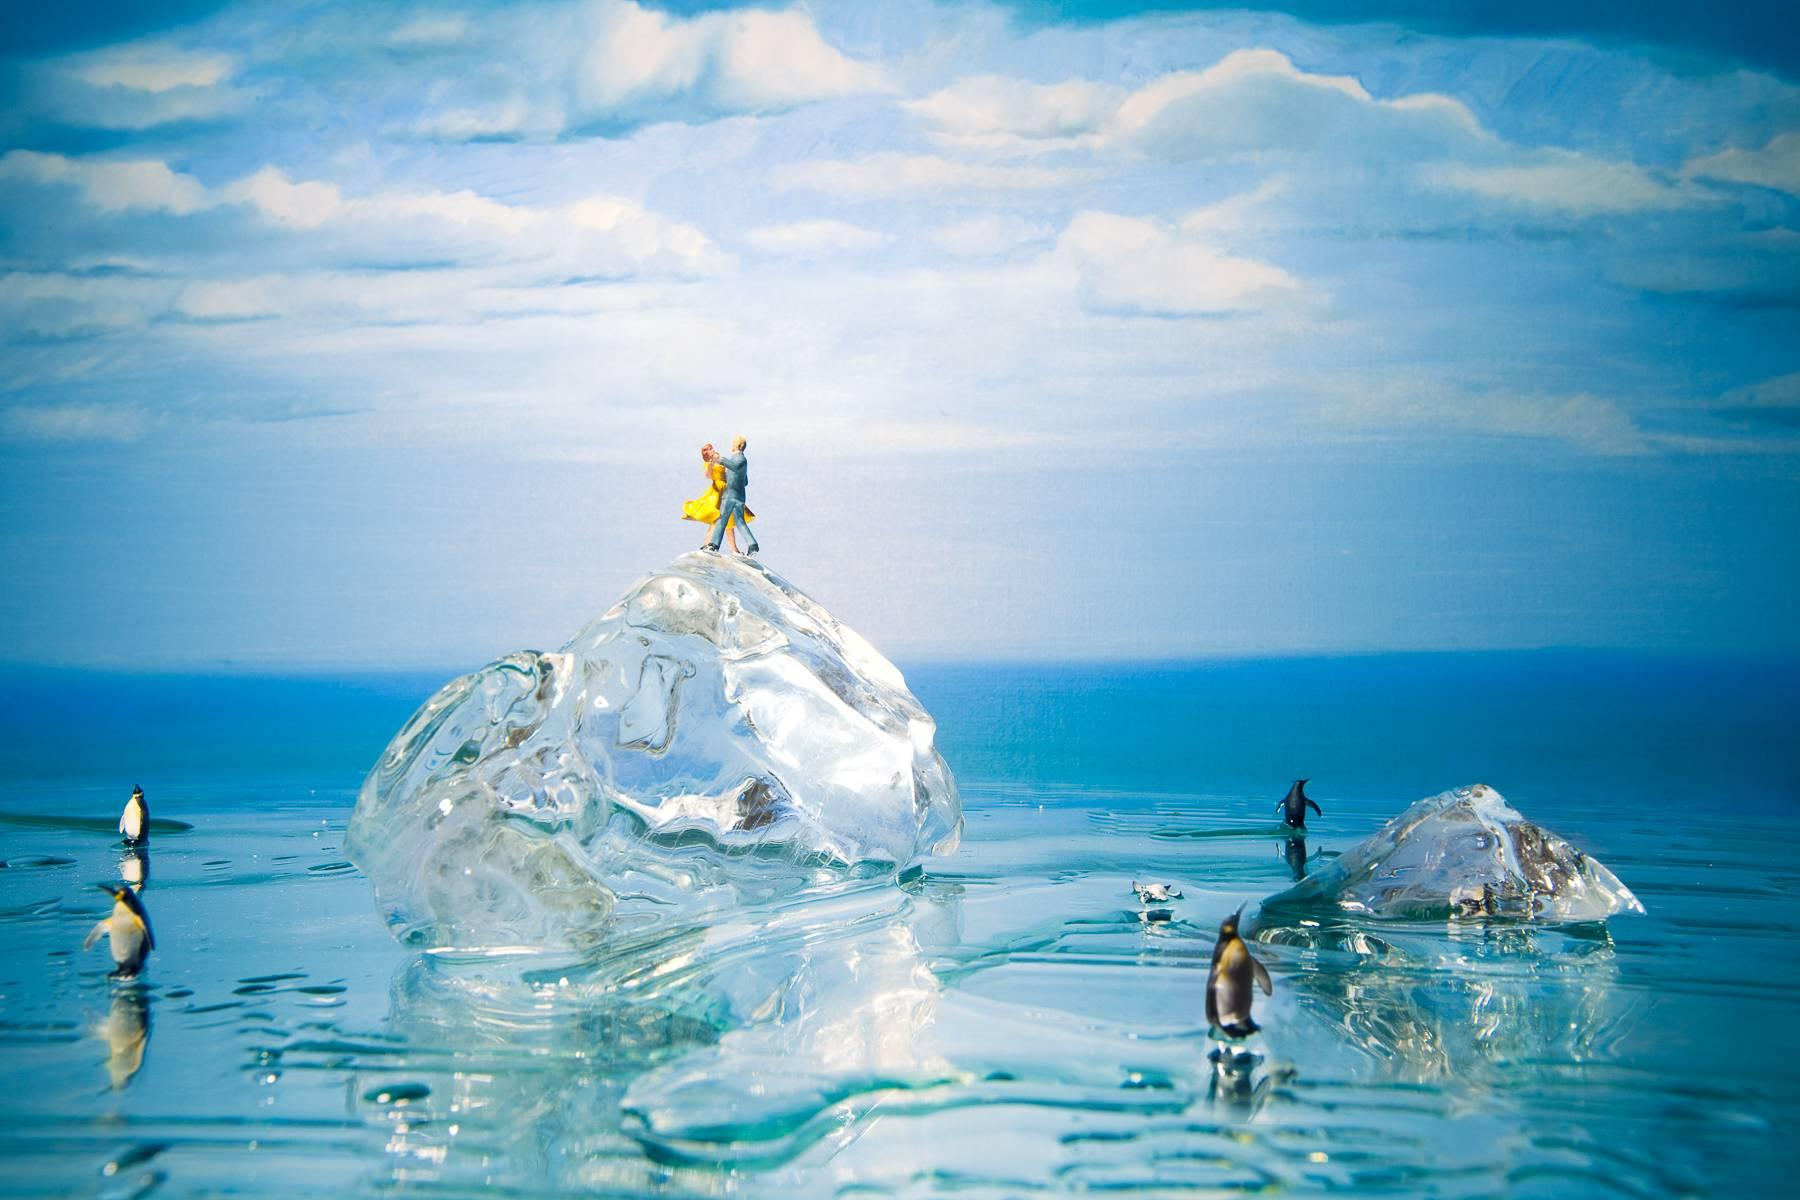 Waltzing on the tip on an iceberg